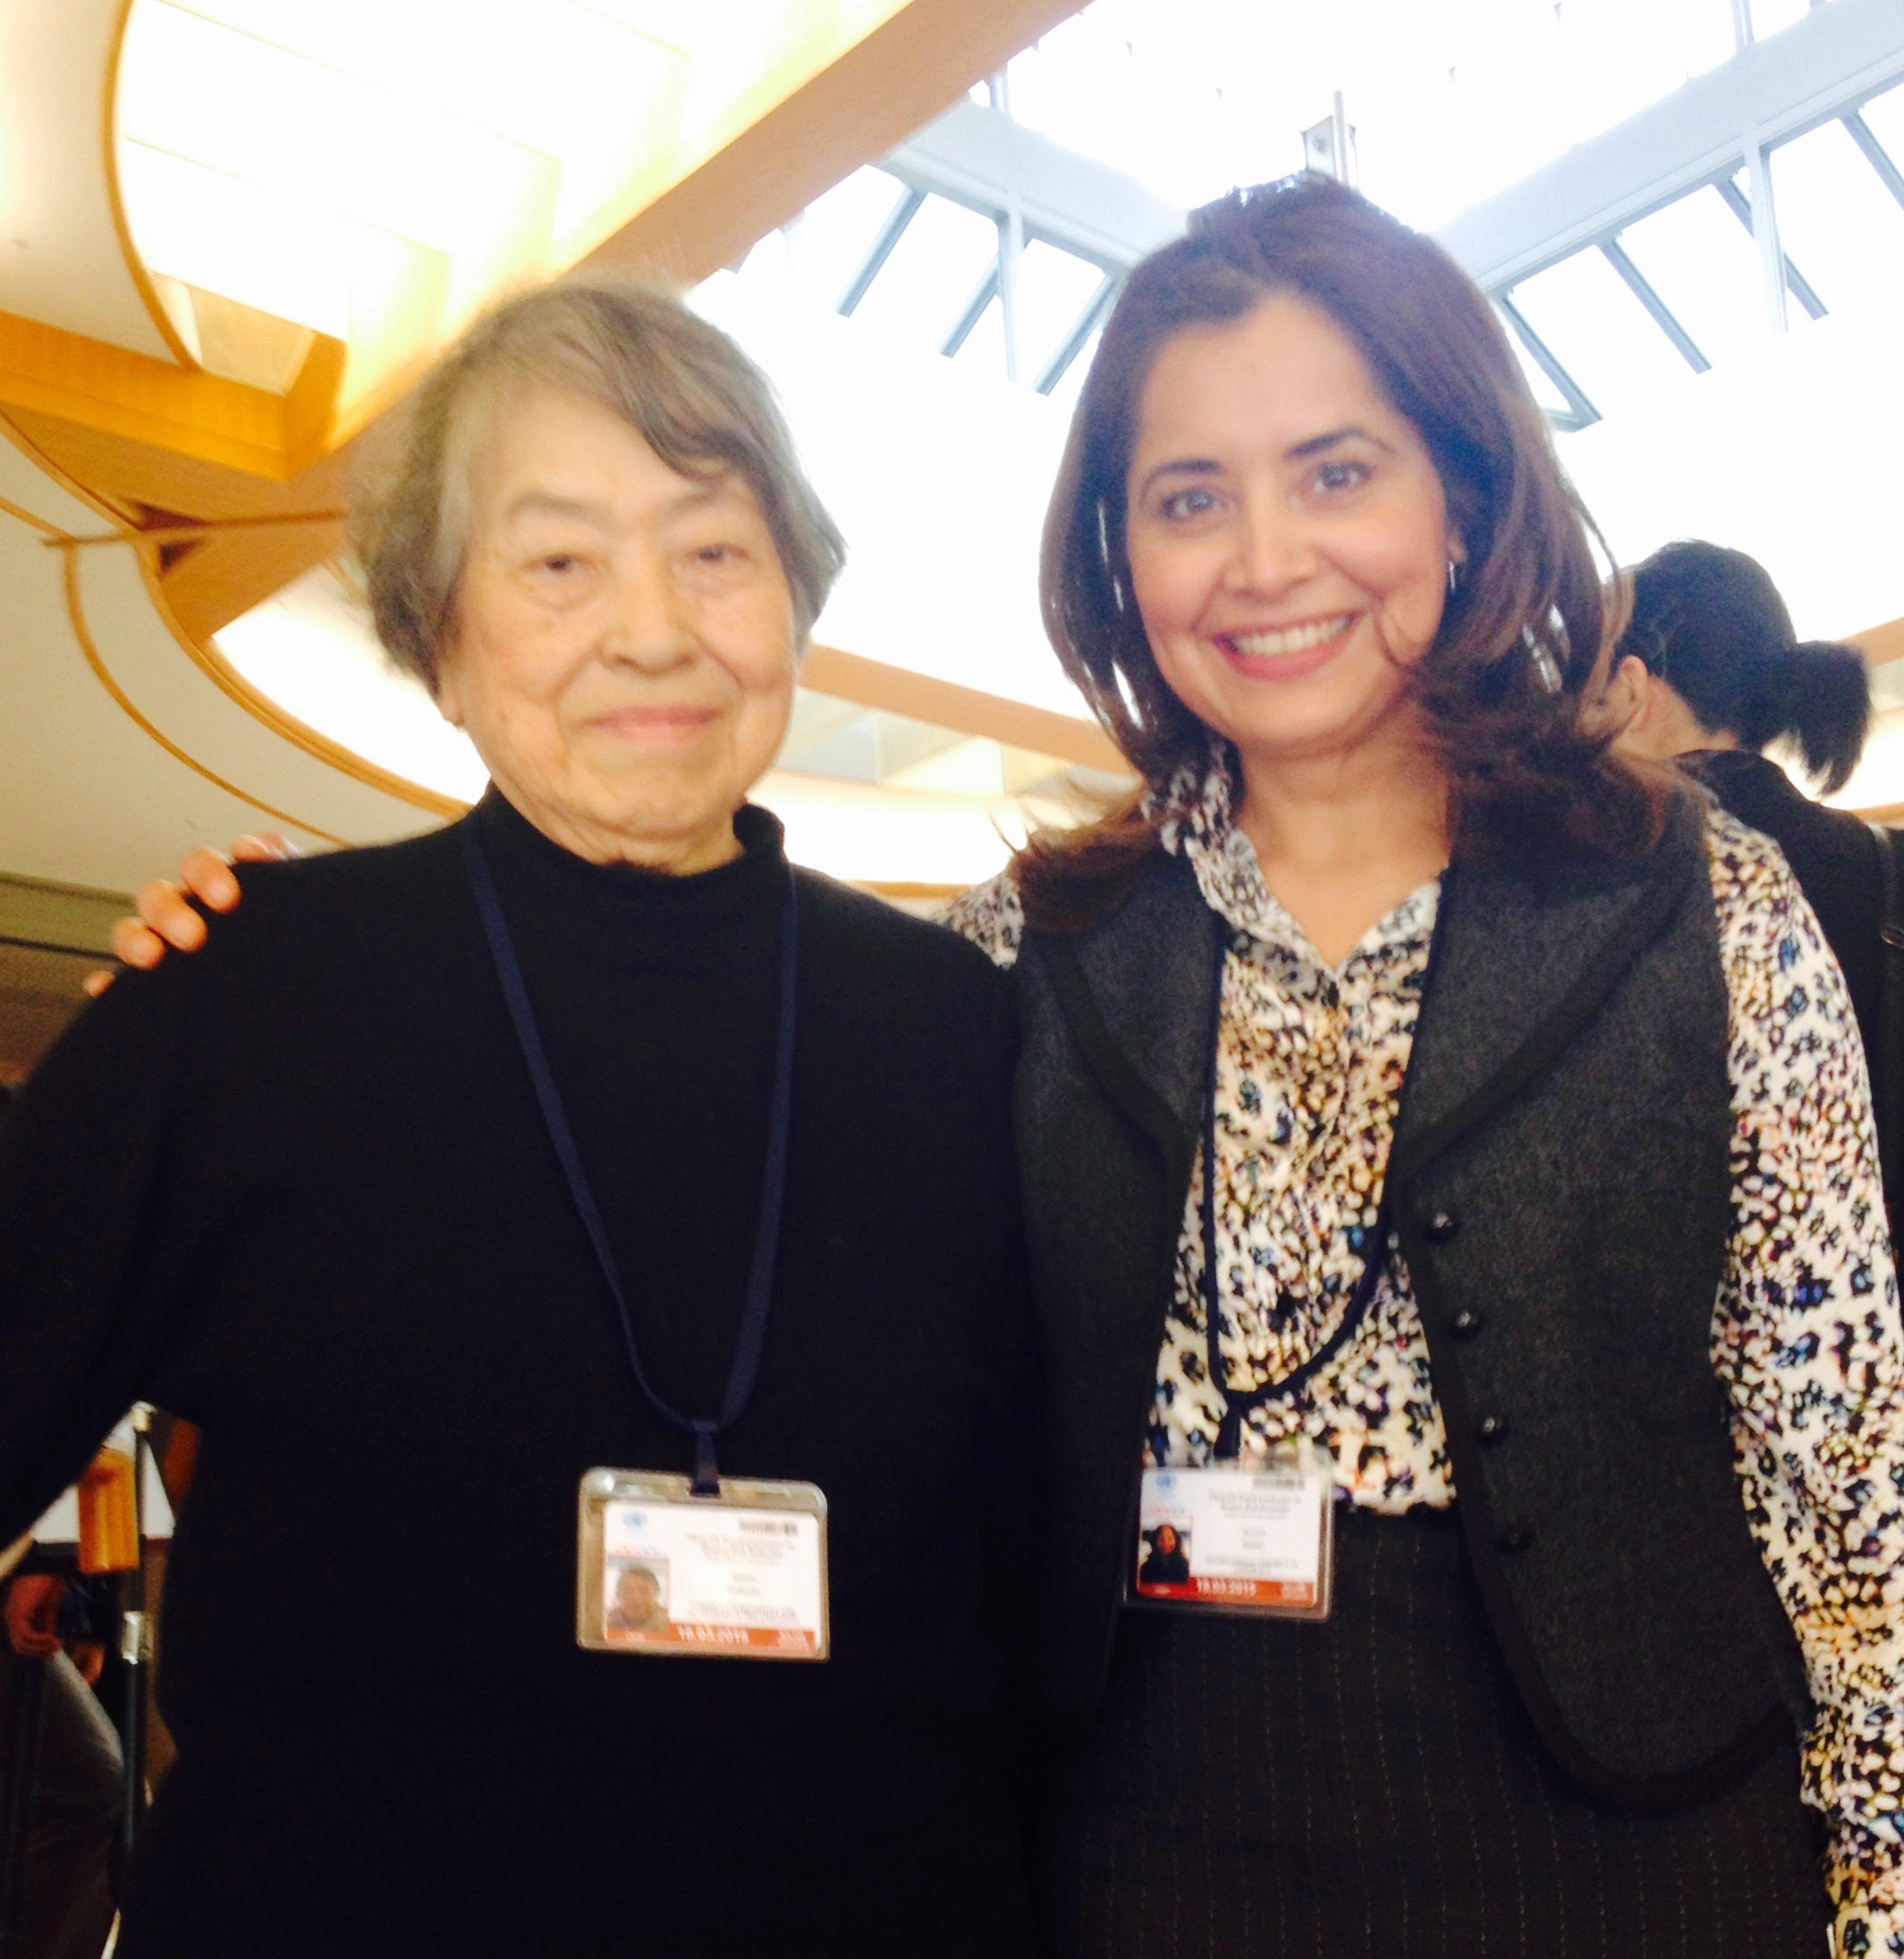 GLOBE co-founder Akiko Domoto and Malini Mehra